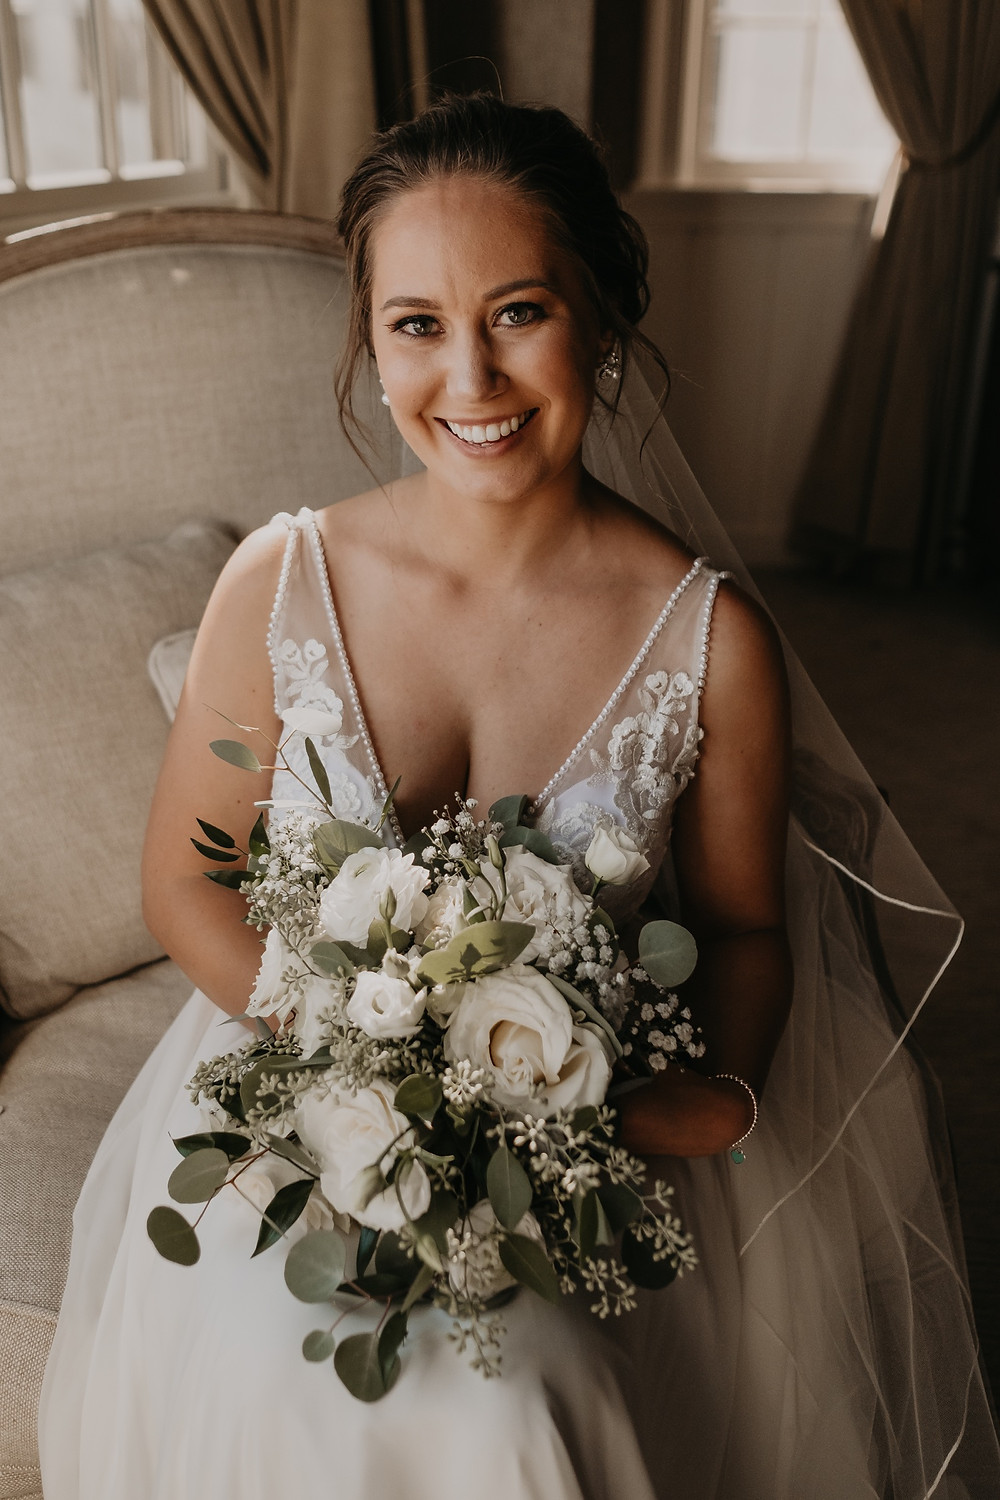 Bridal portrait with bride's bouquet of white roses and greenery